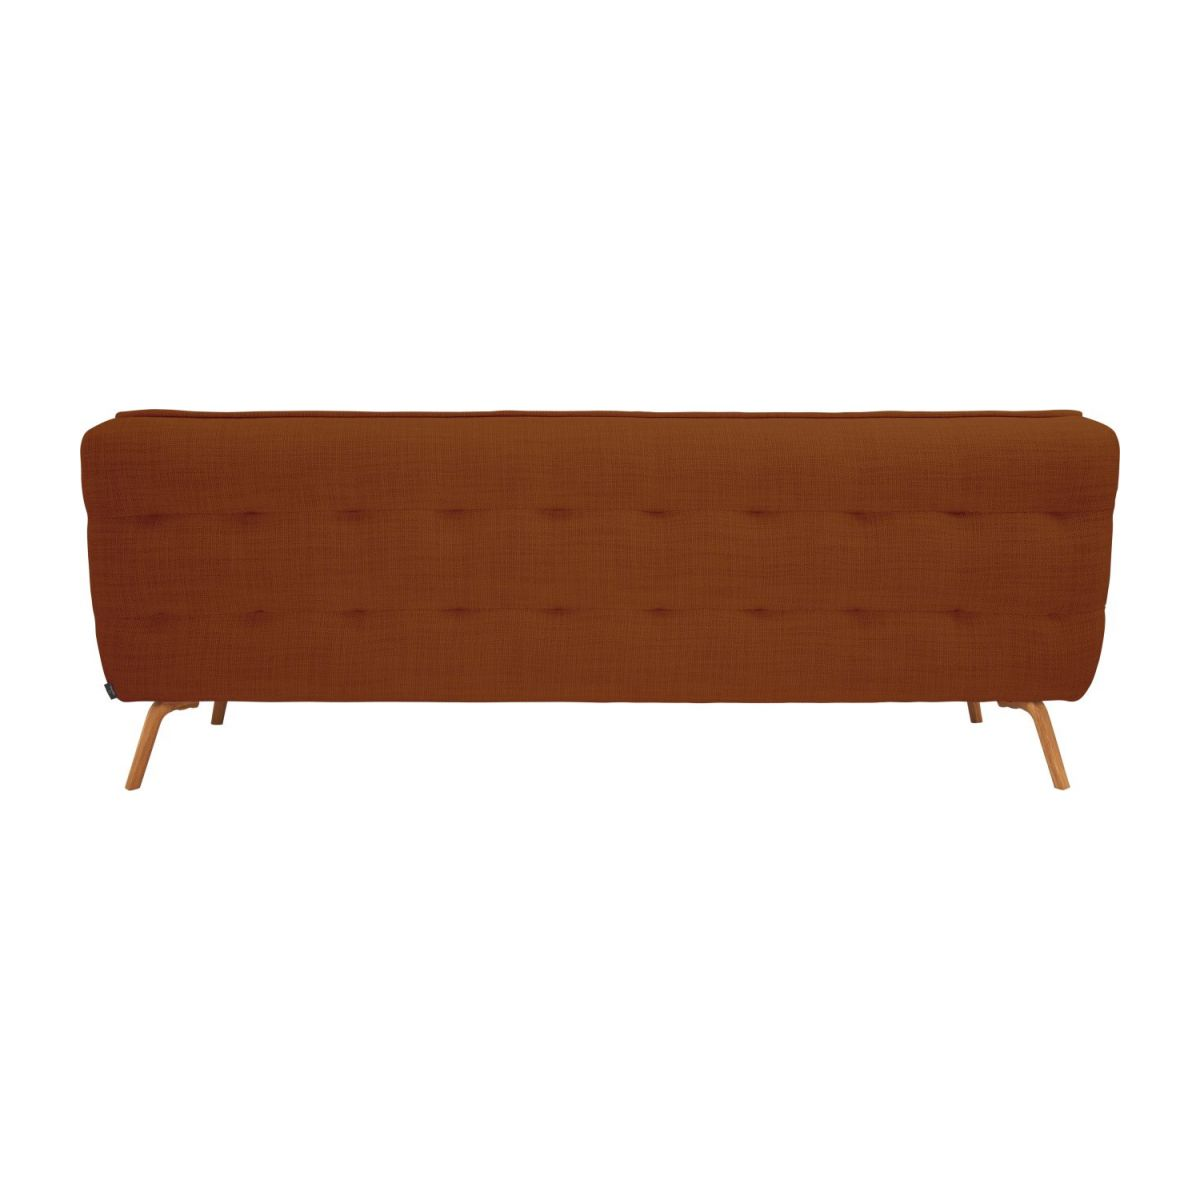 3 seater sofa in Fasoli fabric, warm red rock and oak legs n°3